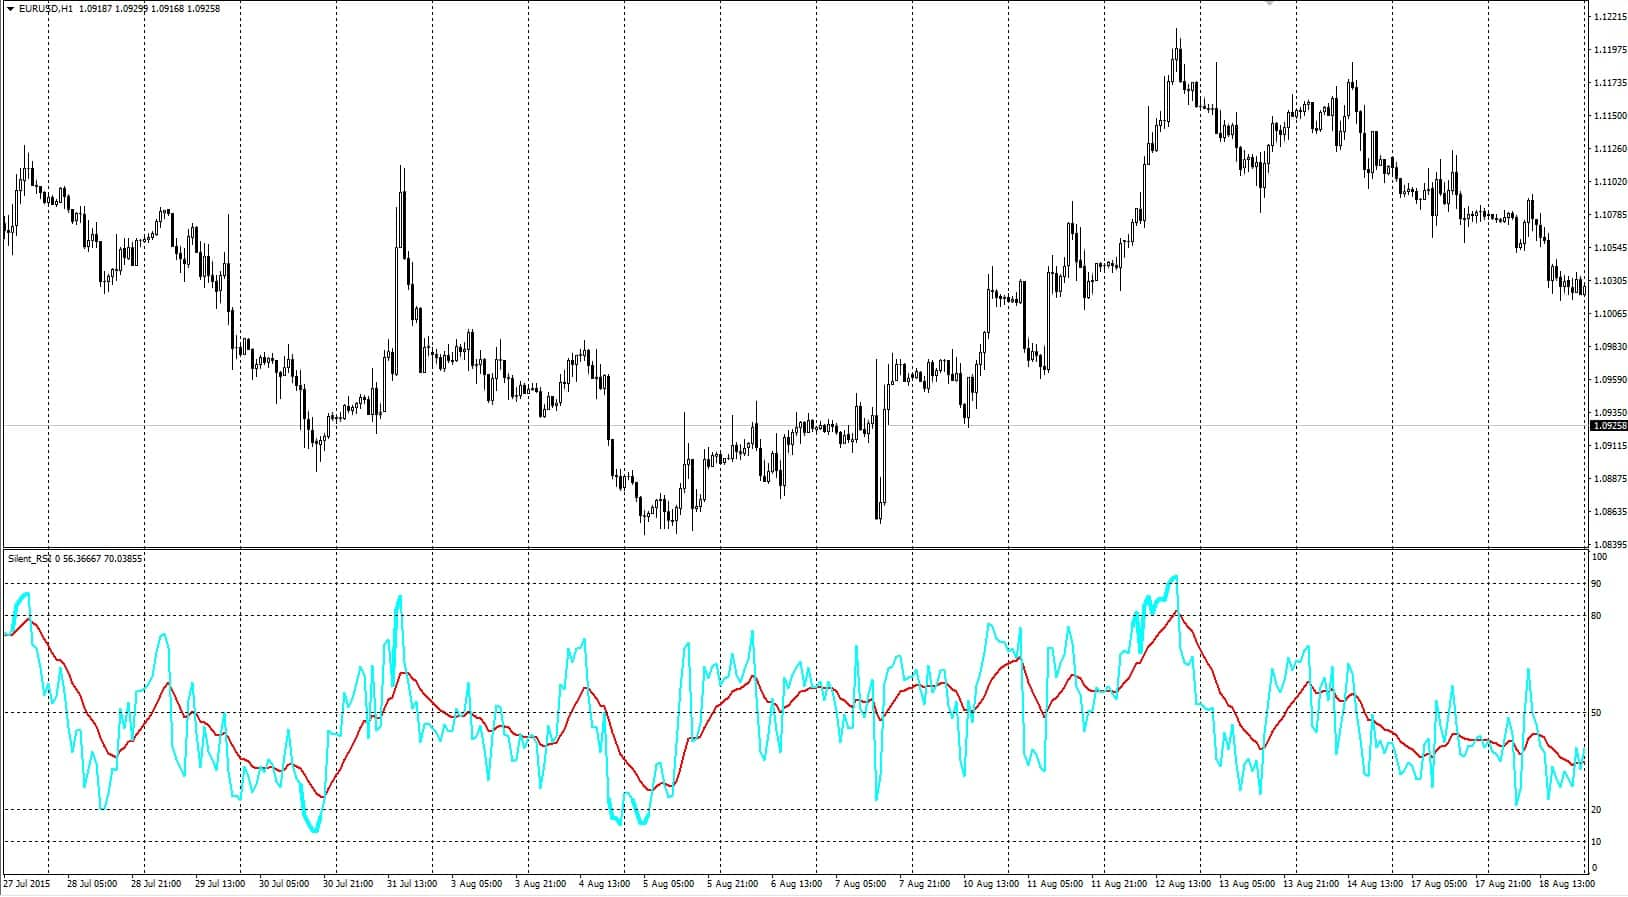 RSI and moving averages